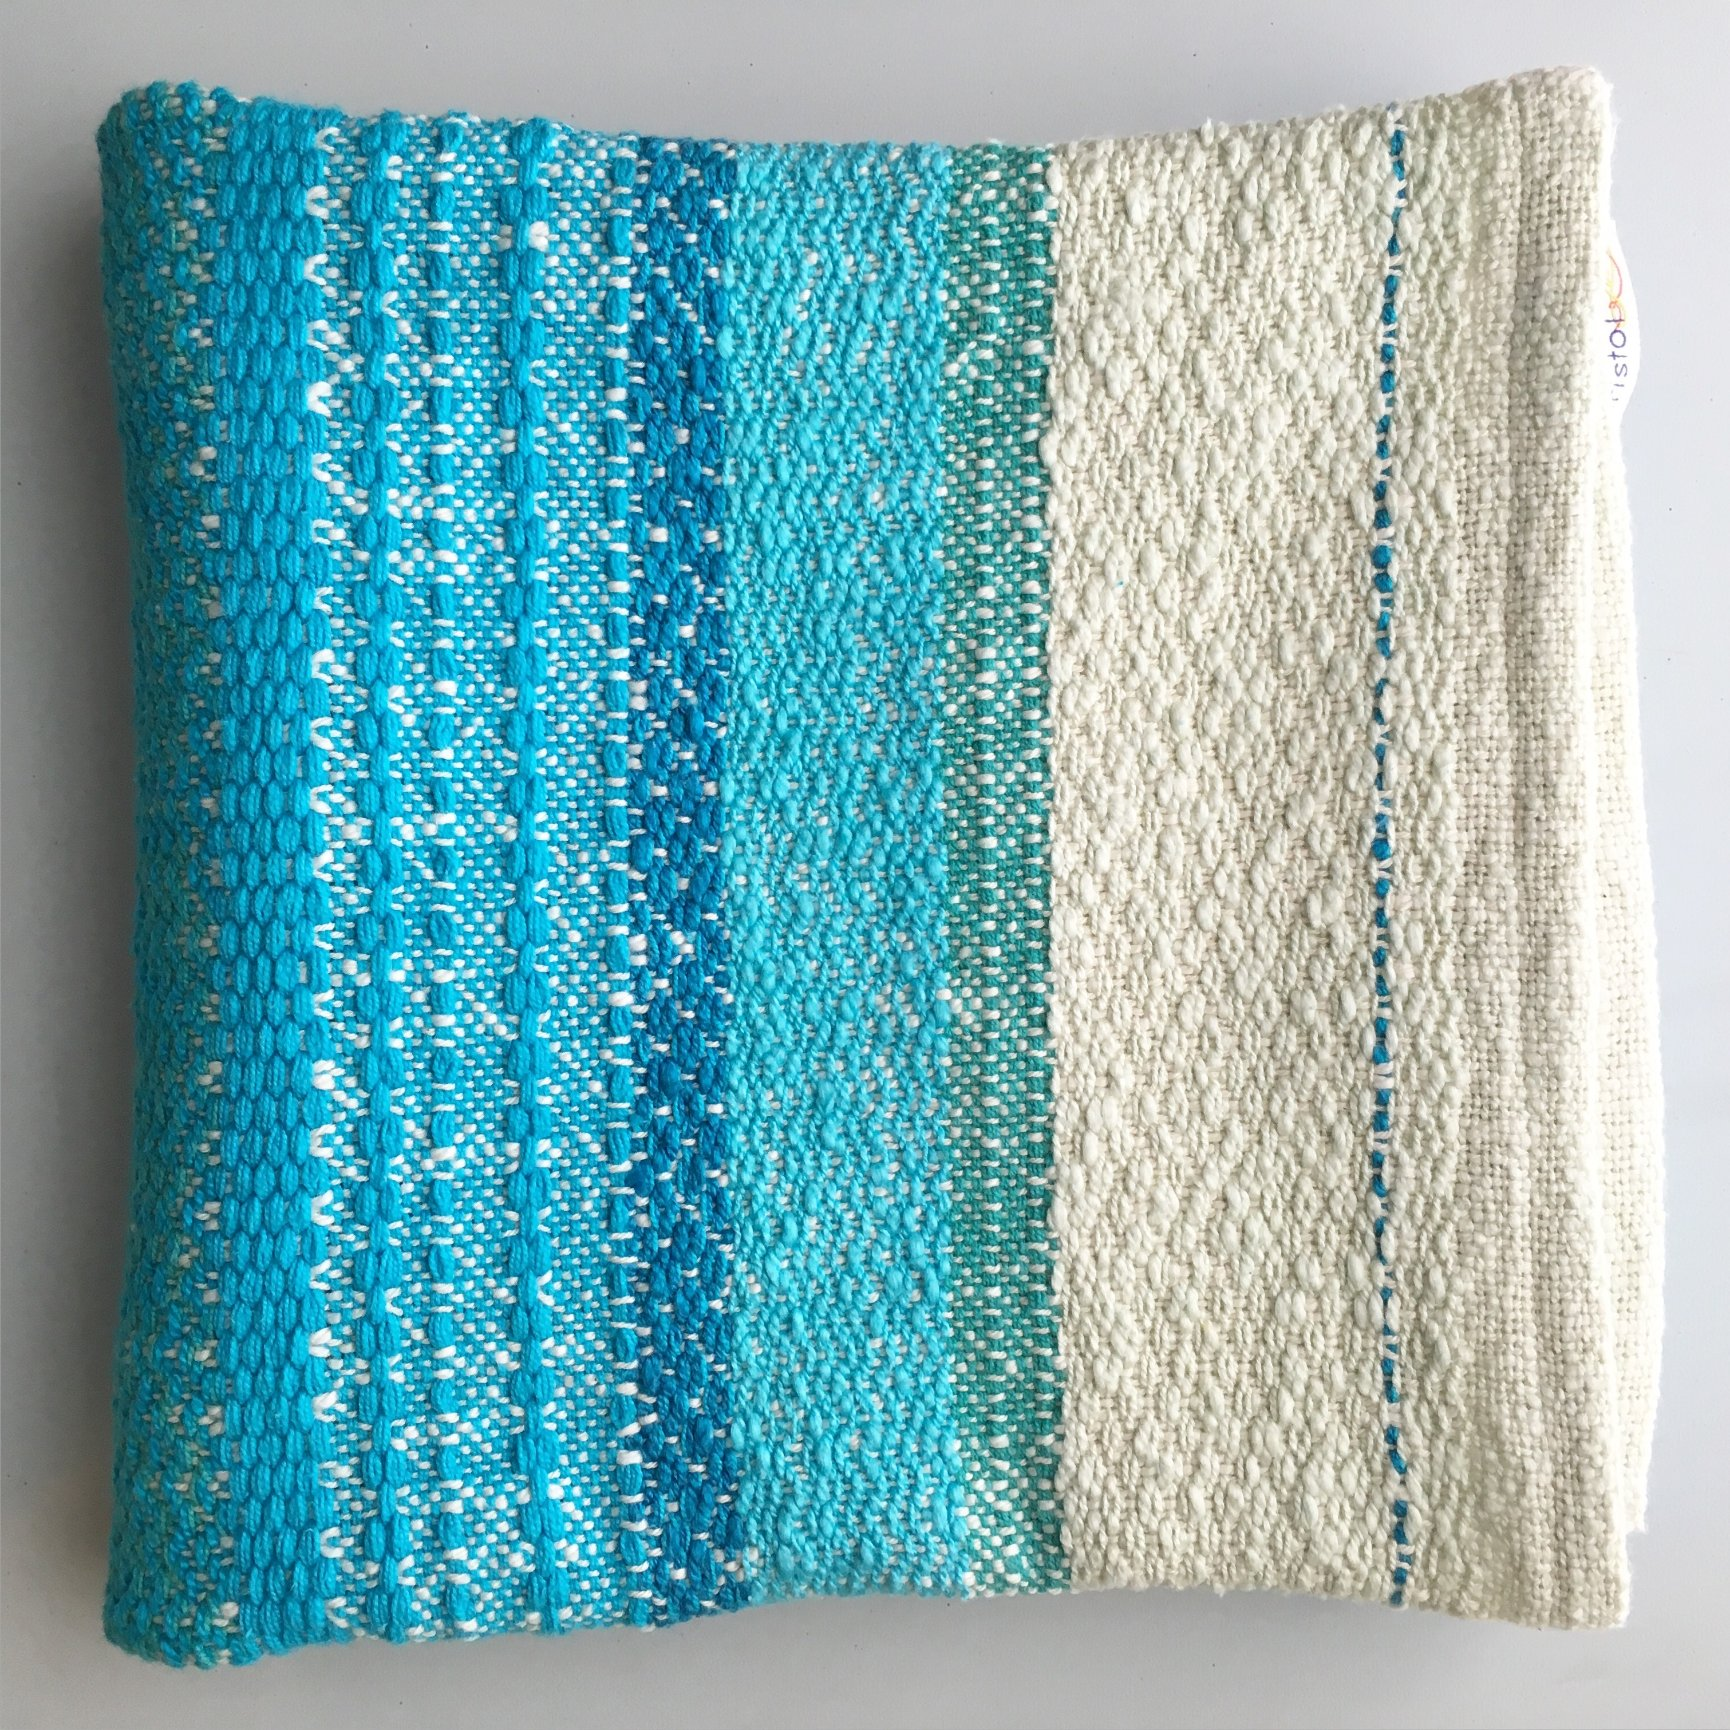 Bristol Looms dish towel in blues and creams